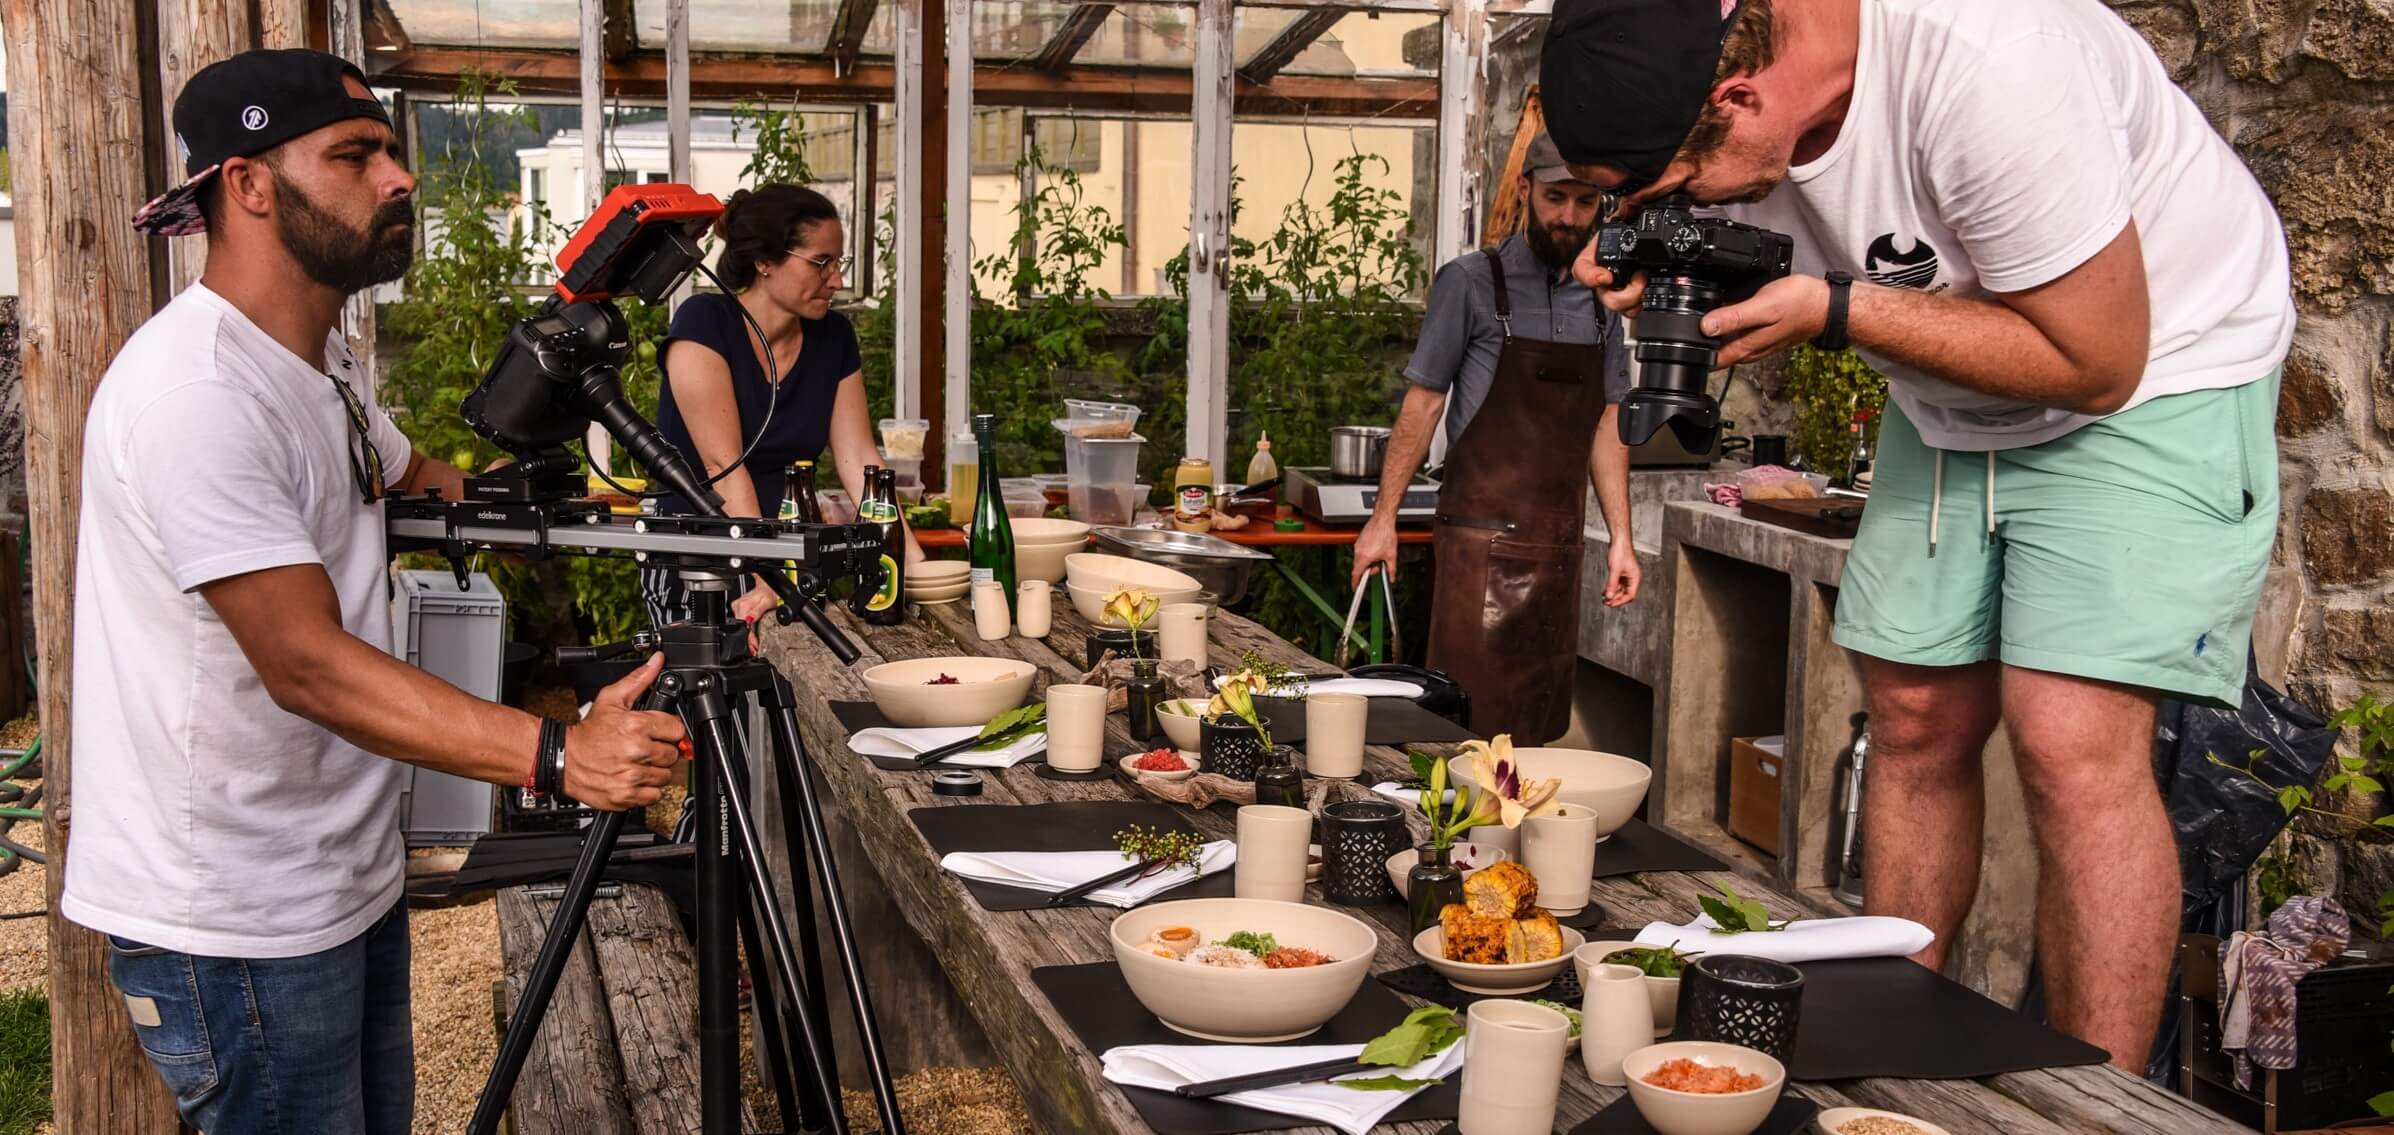 Grill Fotoshooting behind the scenes, Wunschleder HOME